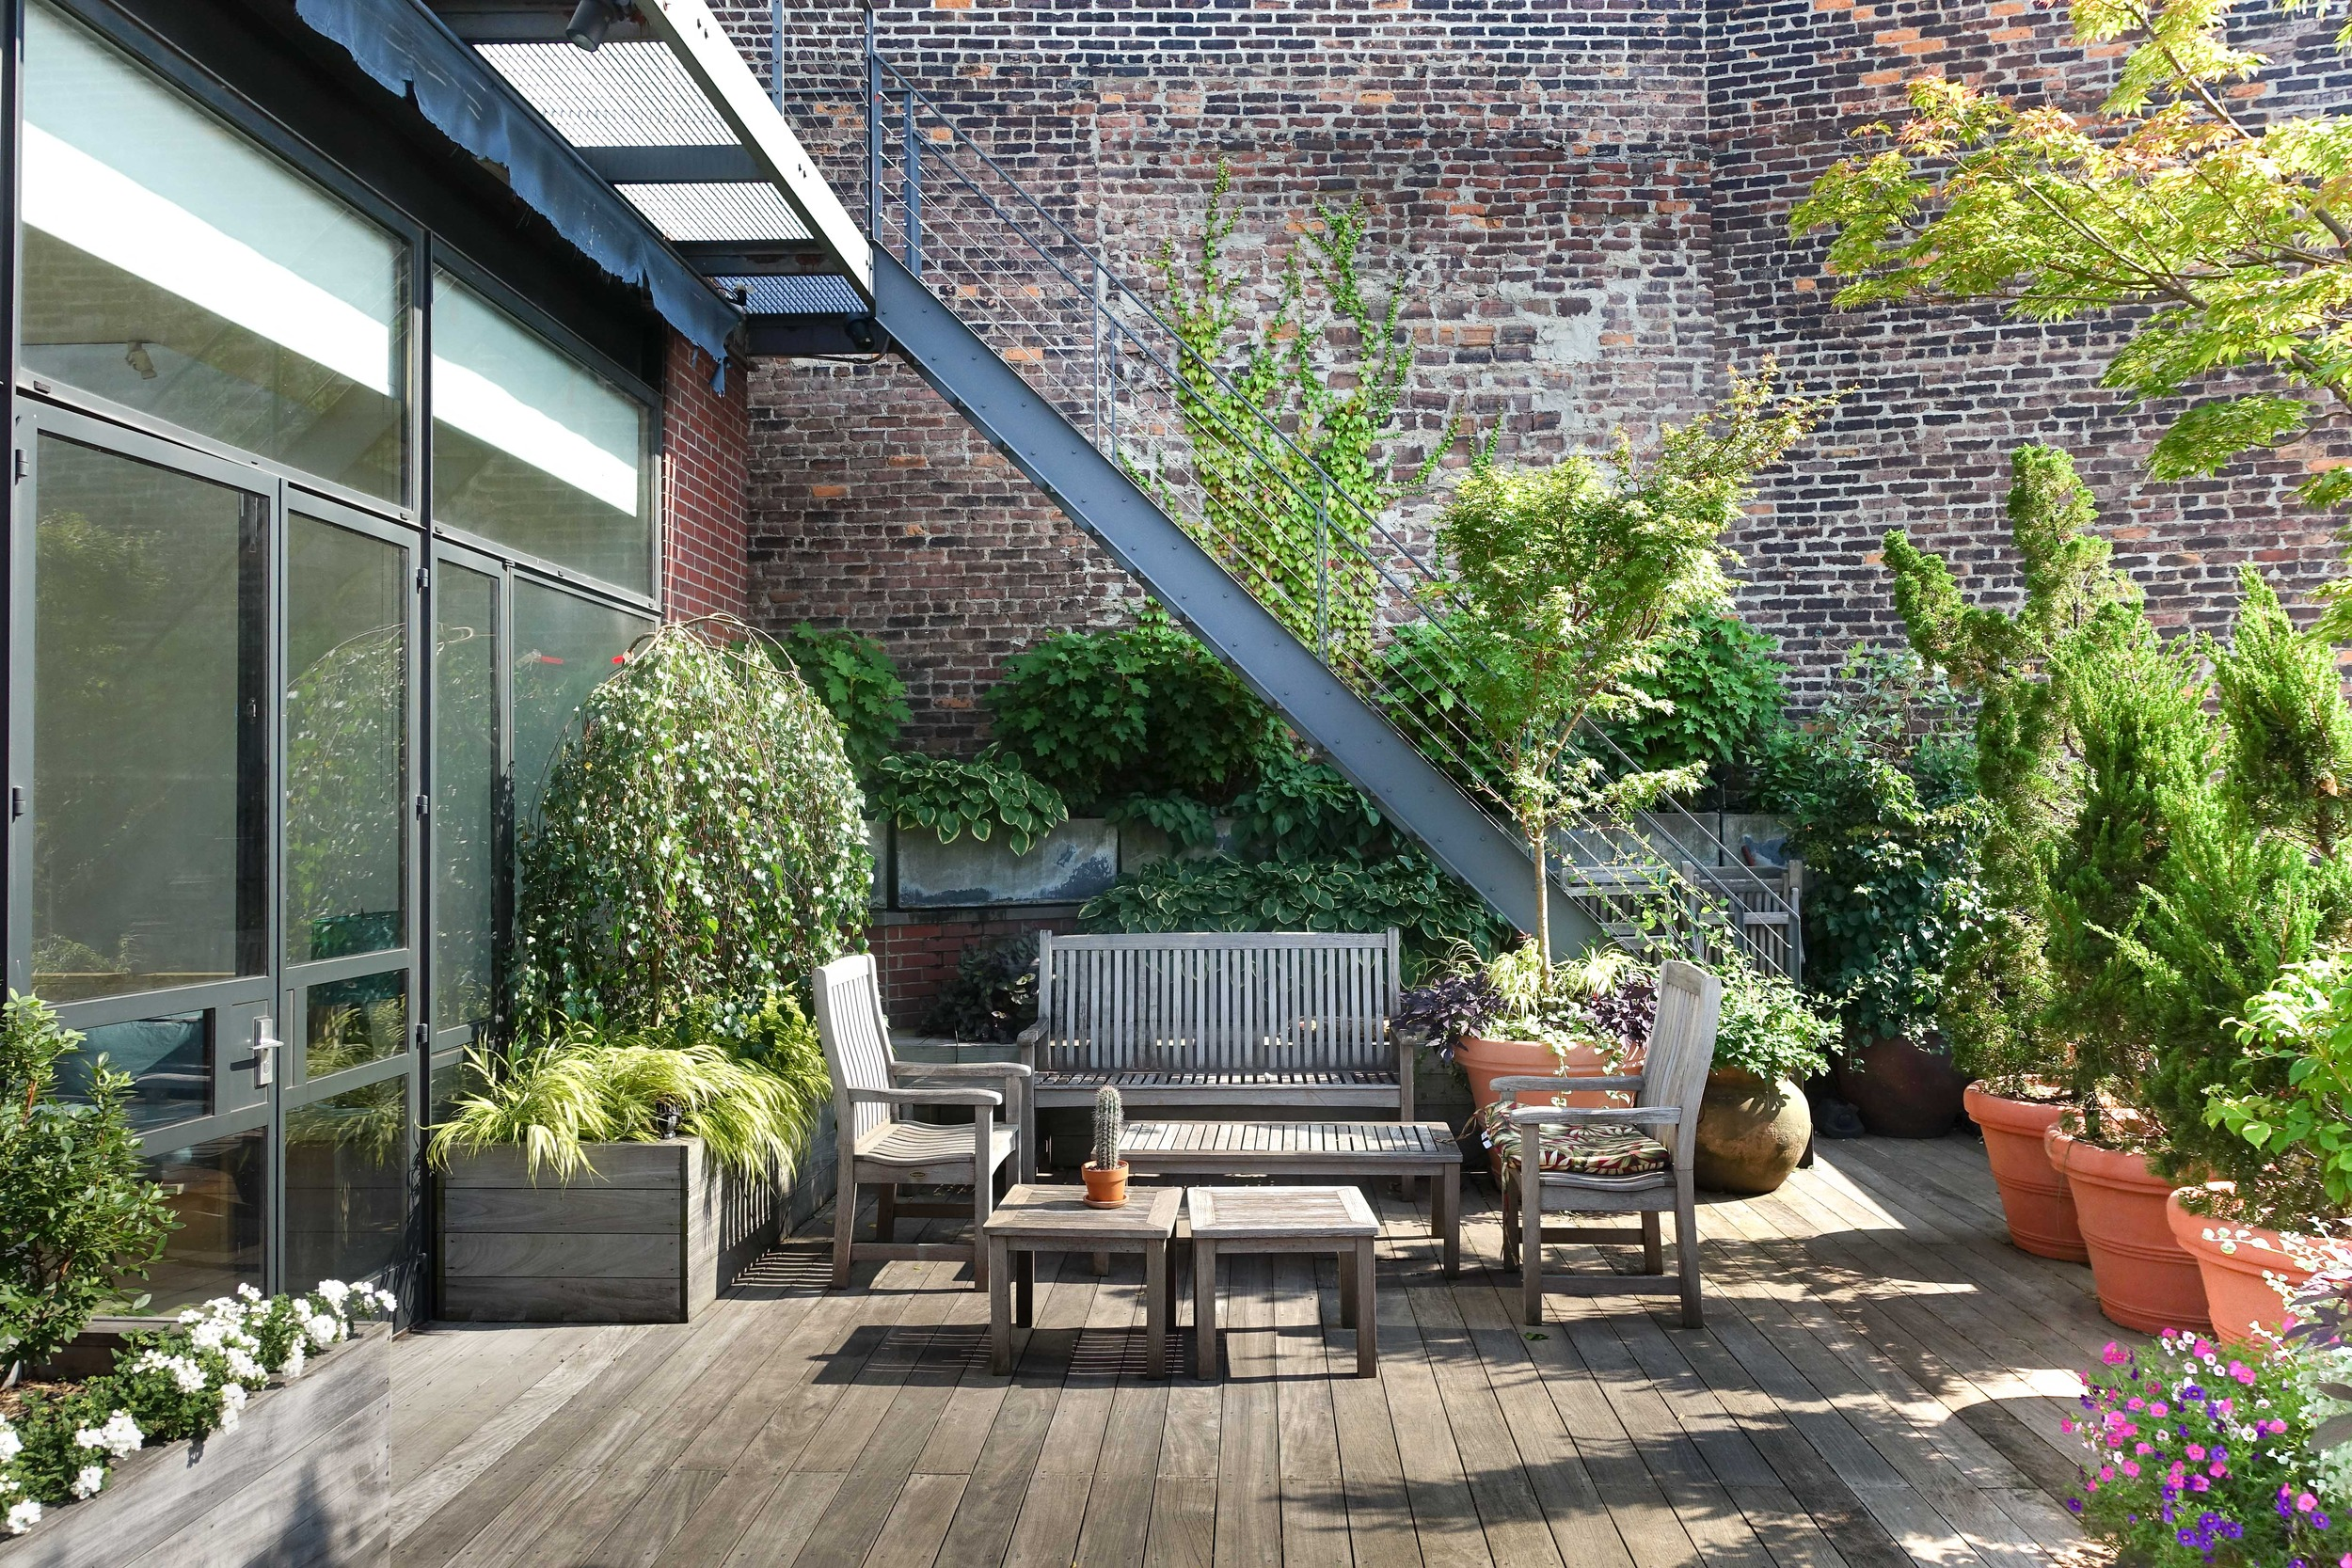 NYC terraces out door garden for film and editorial rental